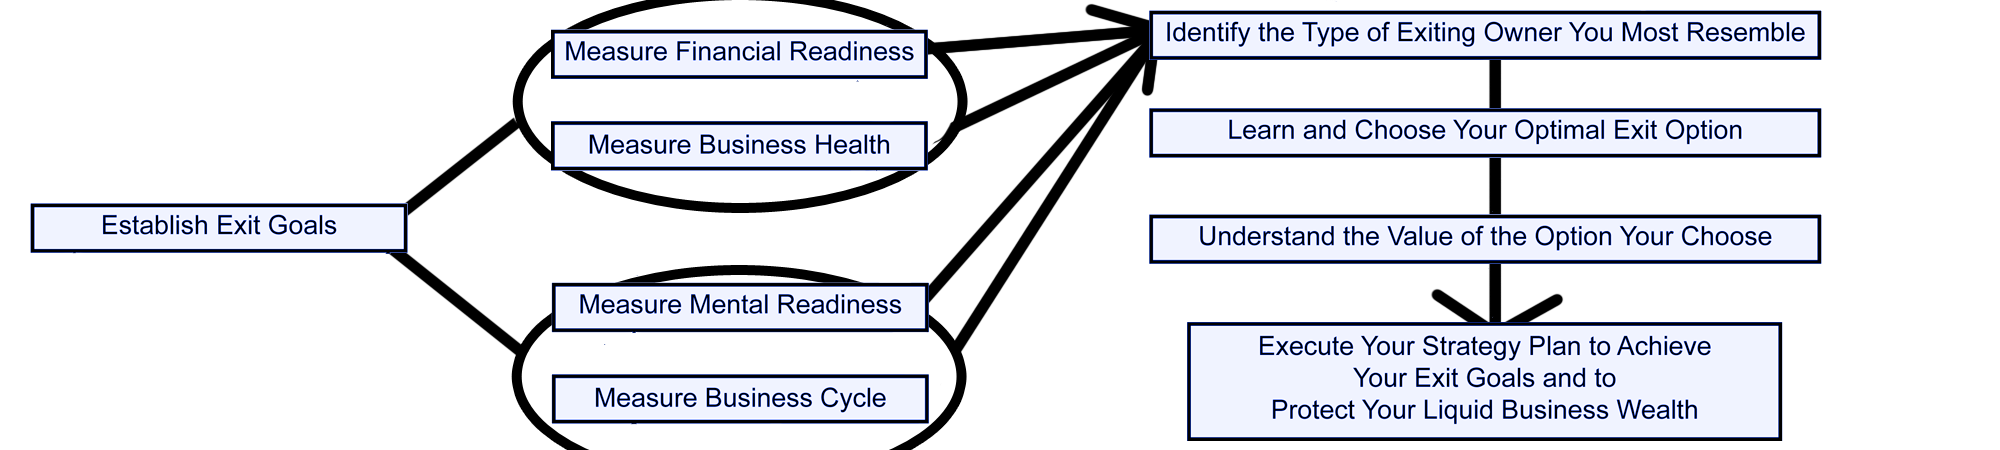 the exit planning process image